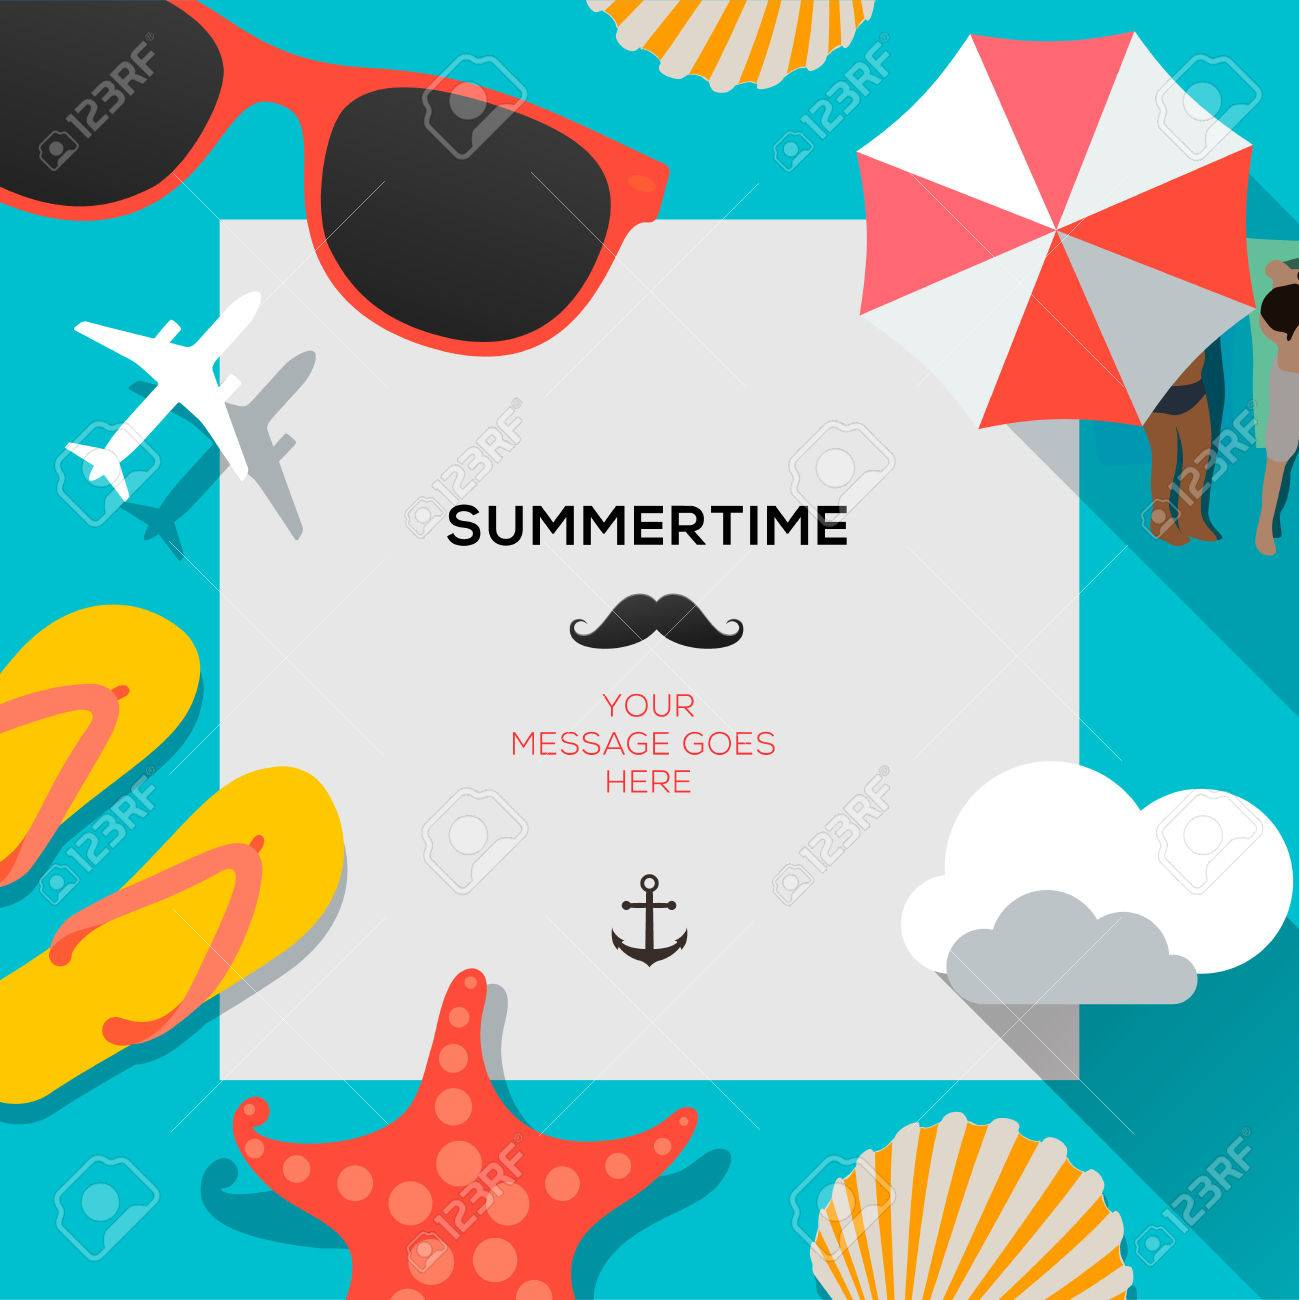 Summertime traveling template with beach summer accessories - 28138602